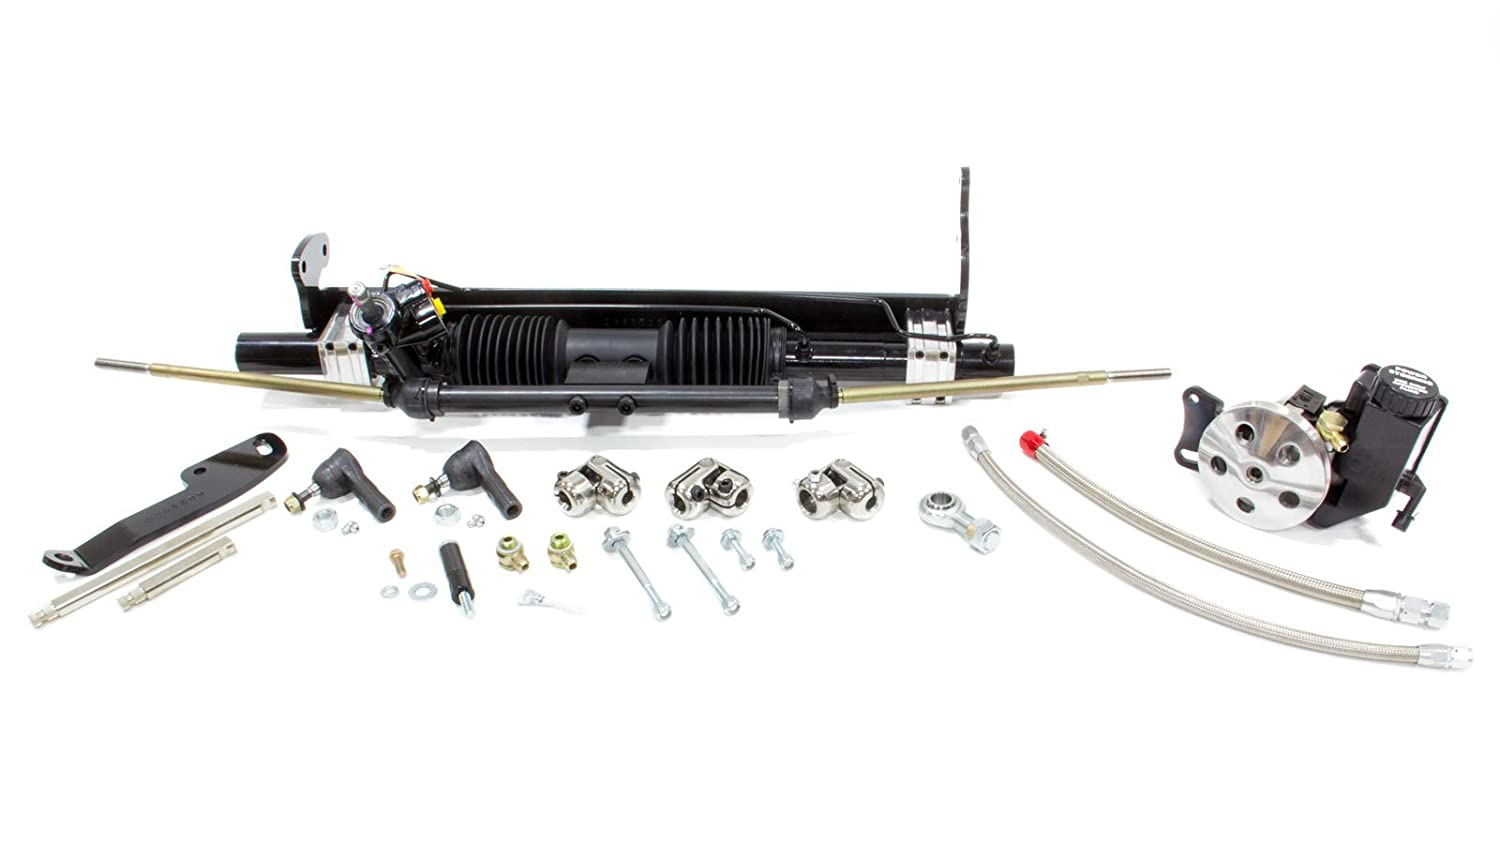 Unisteer 8010740-01 Power Rack and Pinion Kit for Chevrolet Chevelle